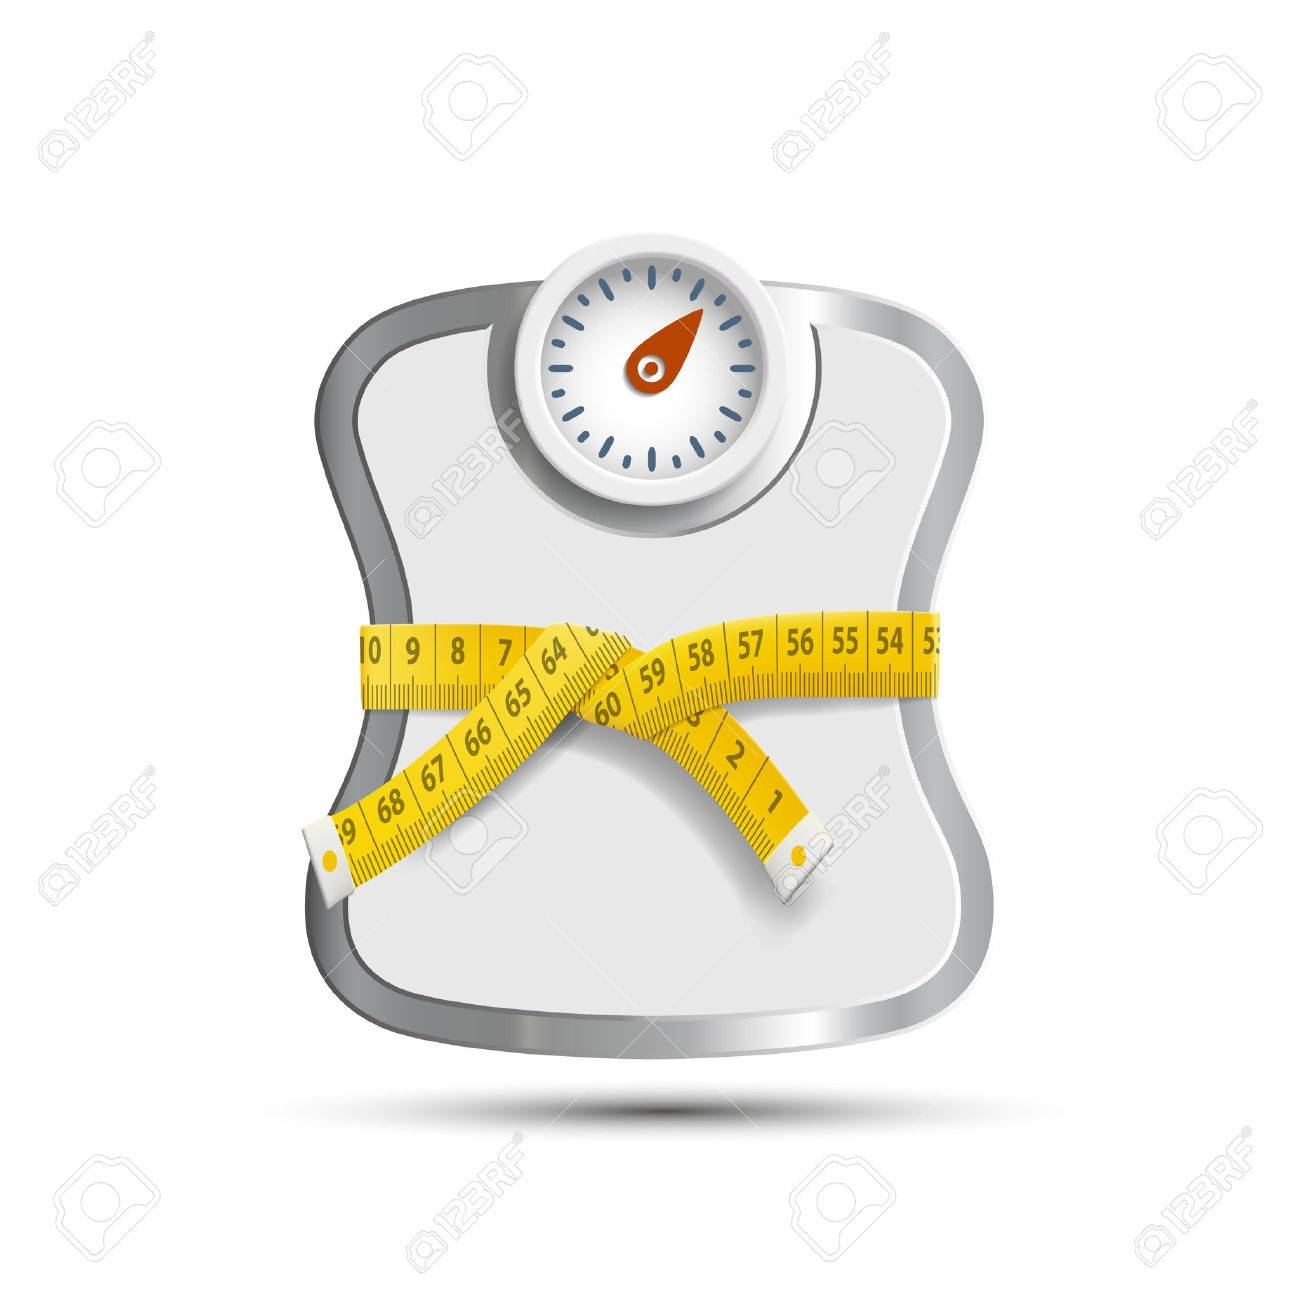 Scales for weighing with Measuring tape. - 50100142